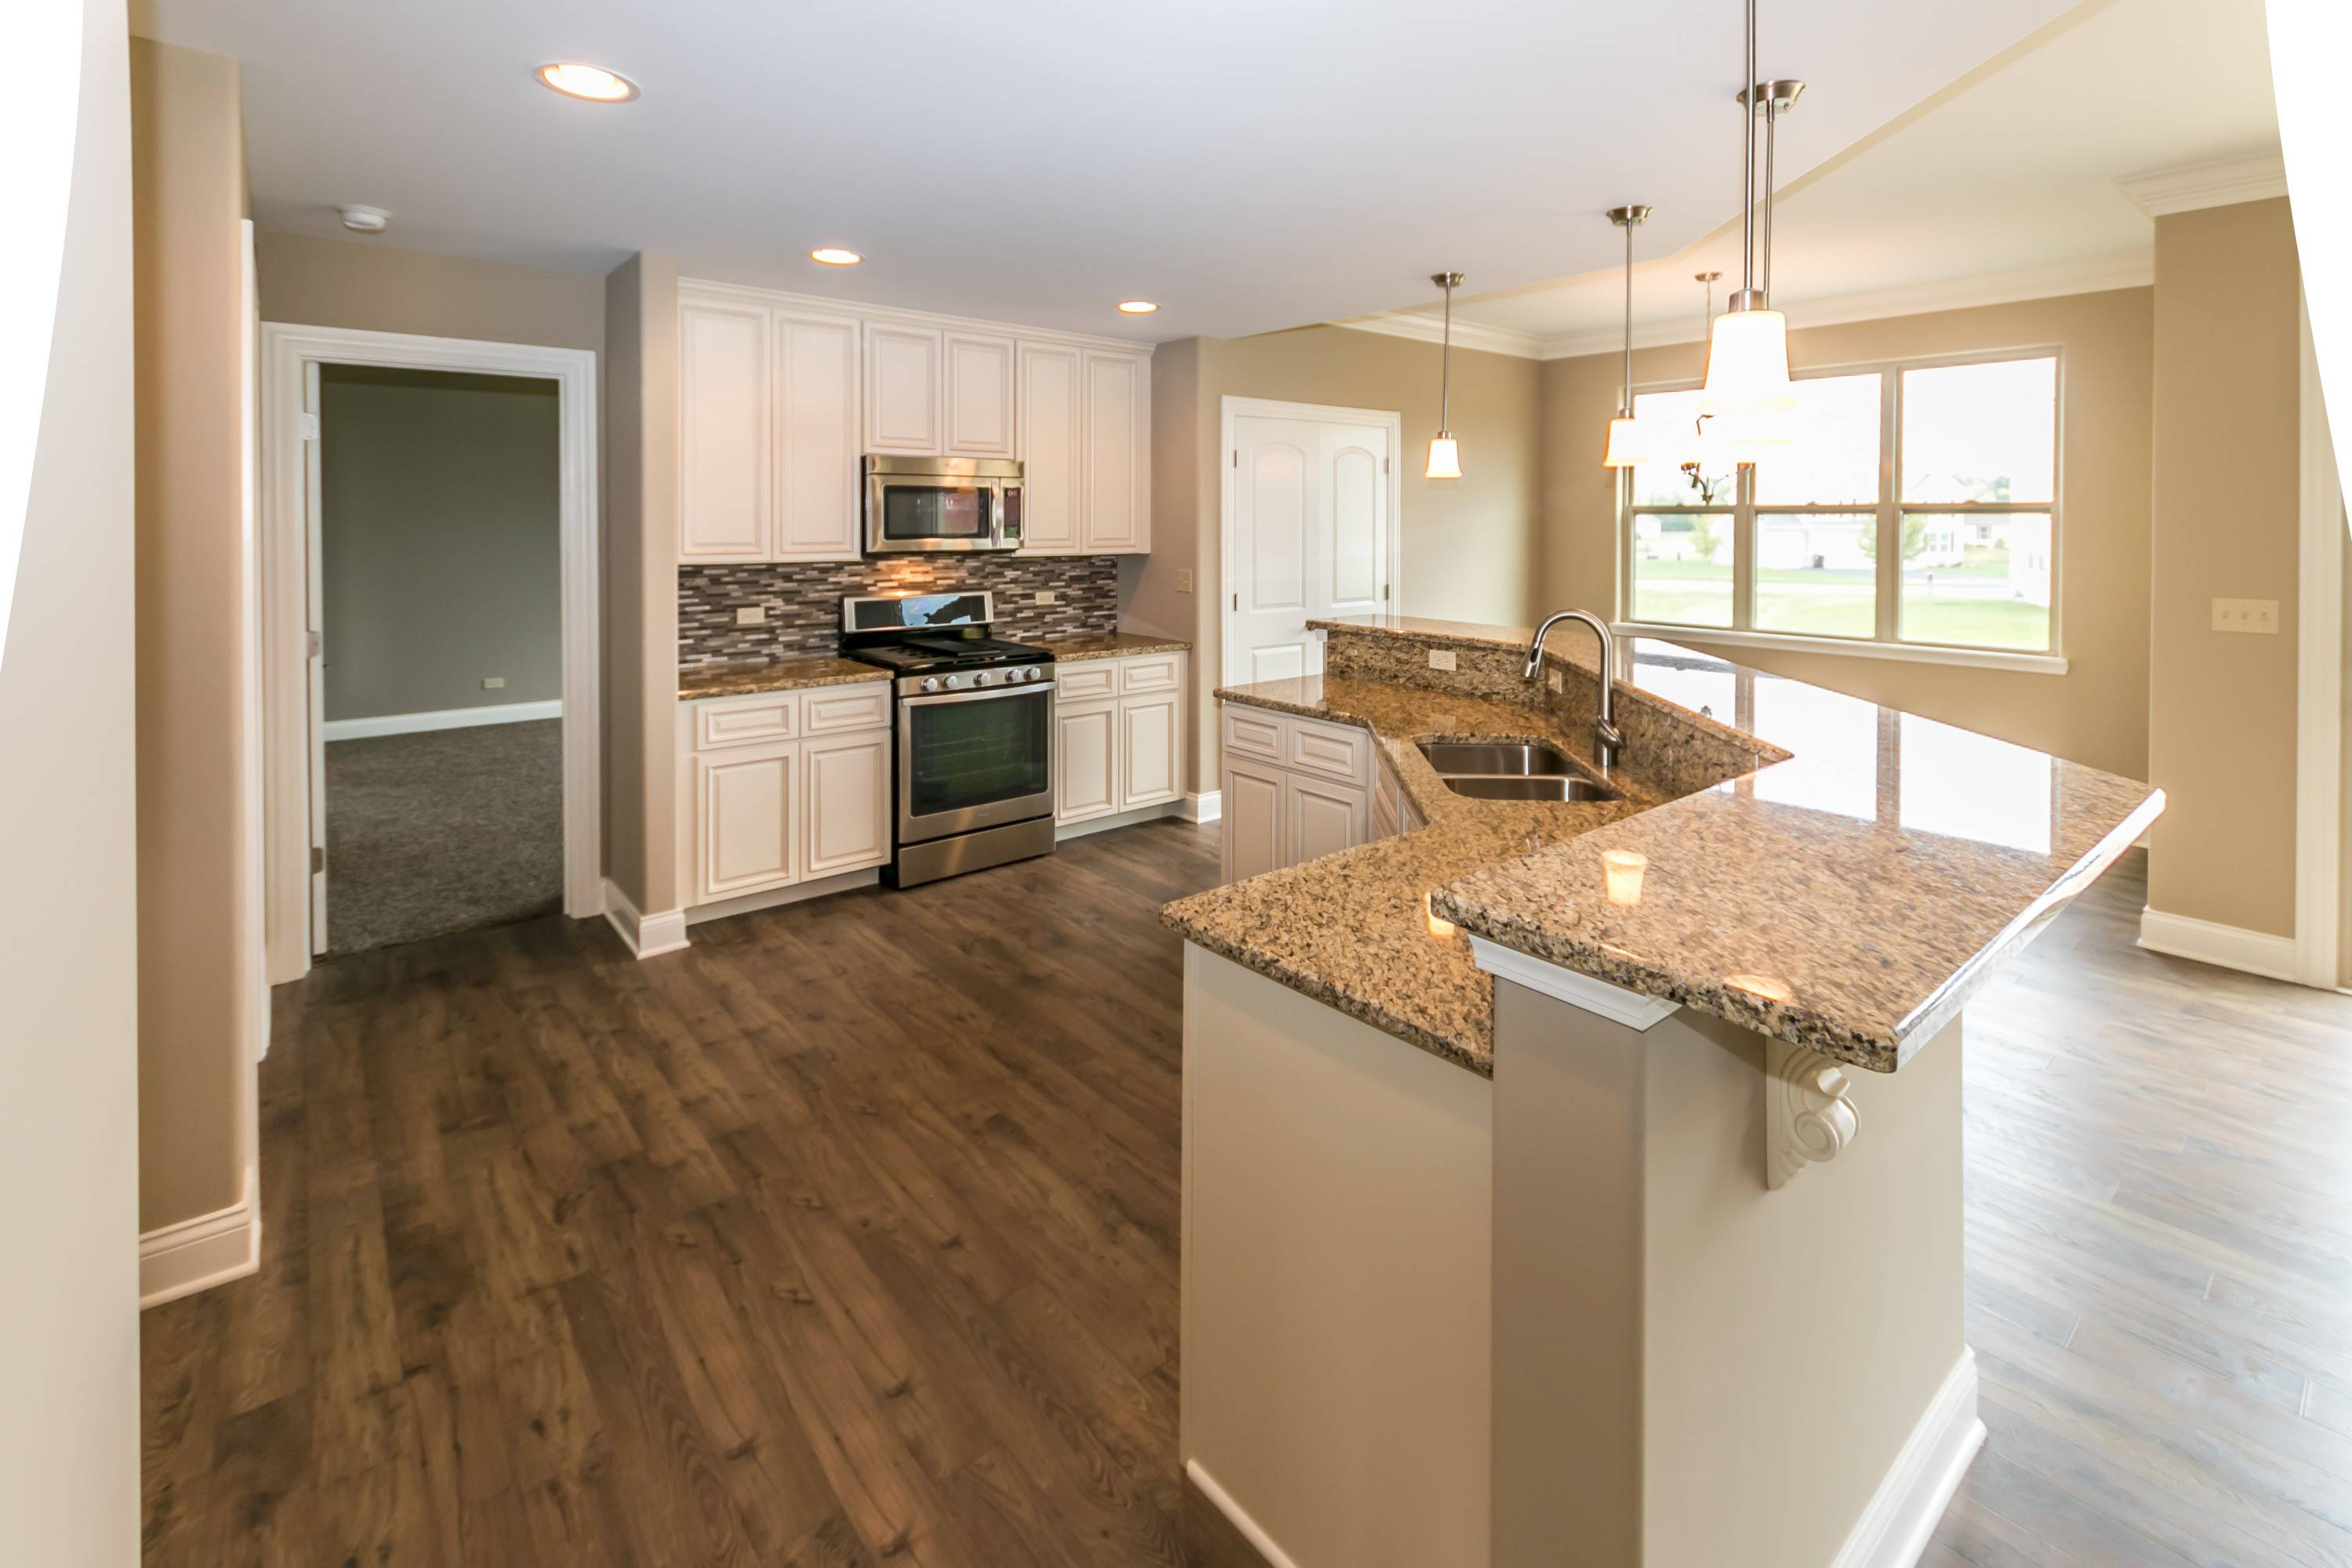 In the Harrison model, the kitchen is open to the breakfast nook with a sink that overlooks the great room and the outdoors.